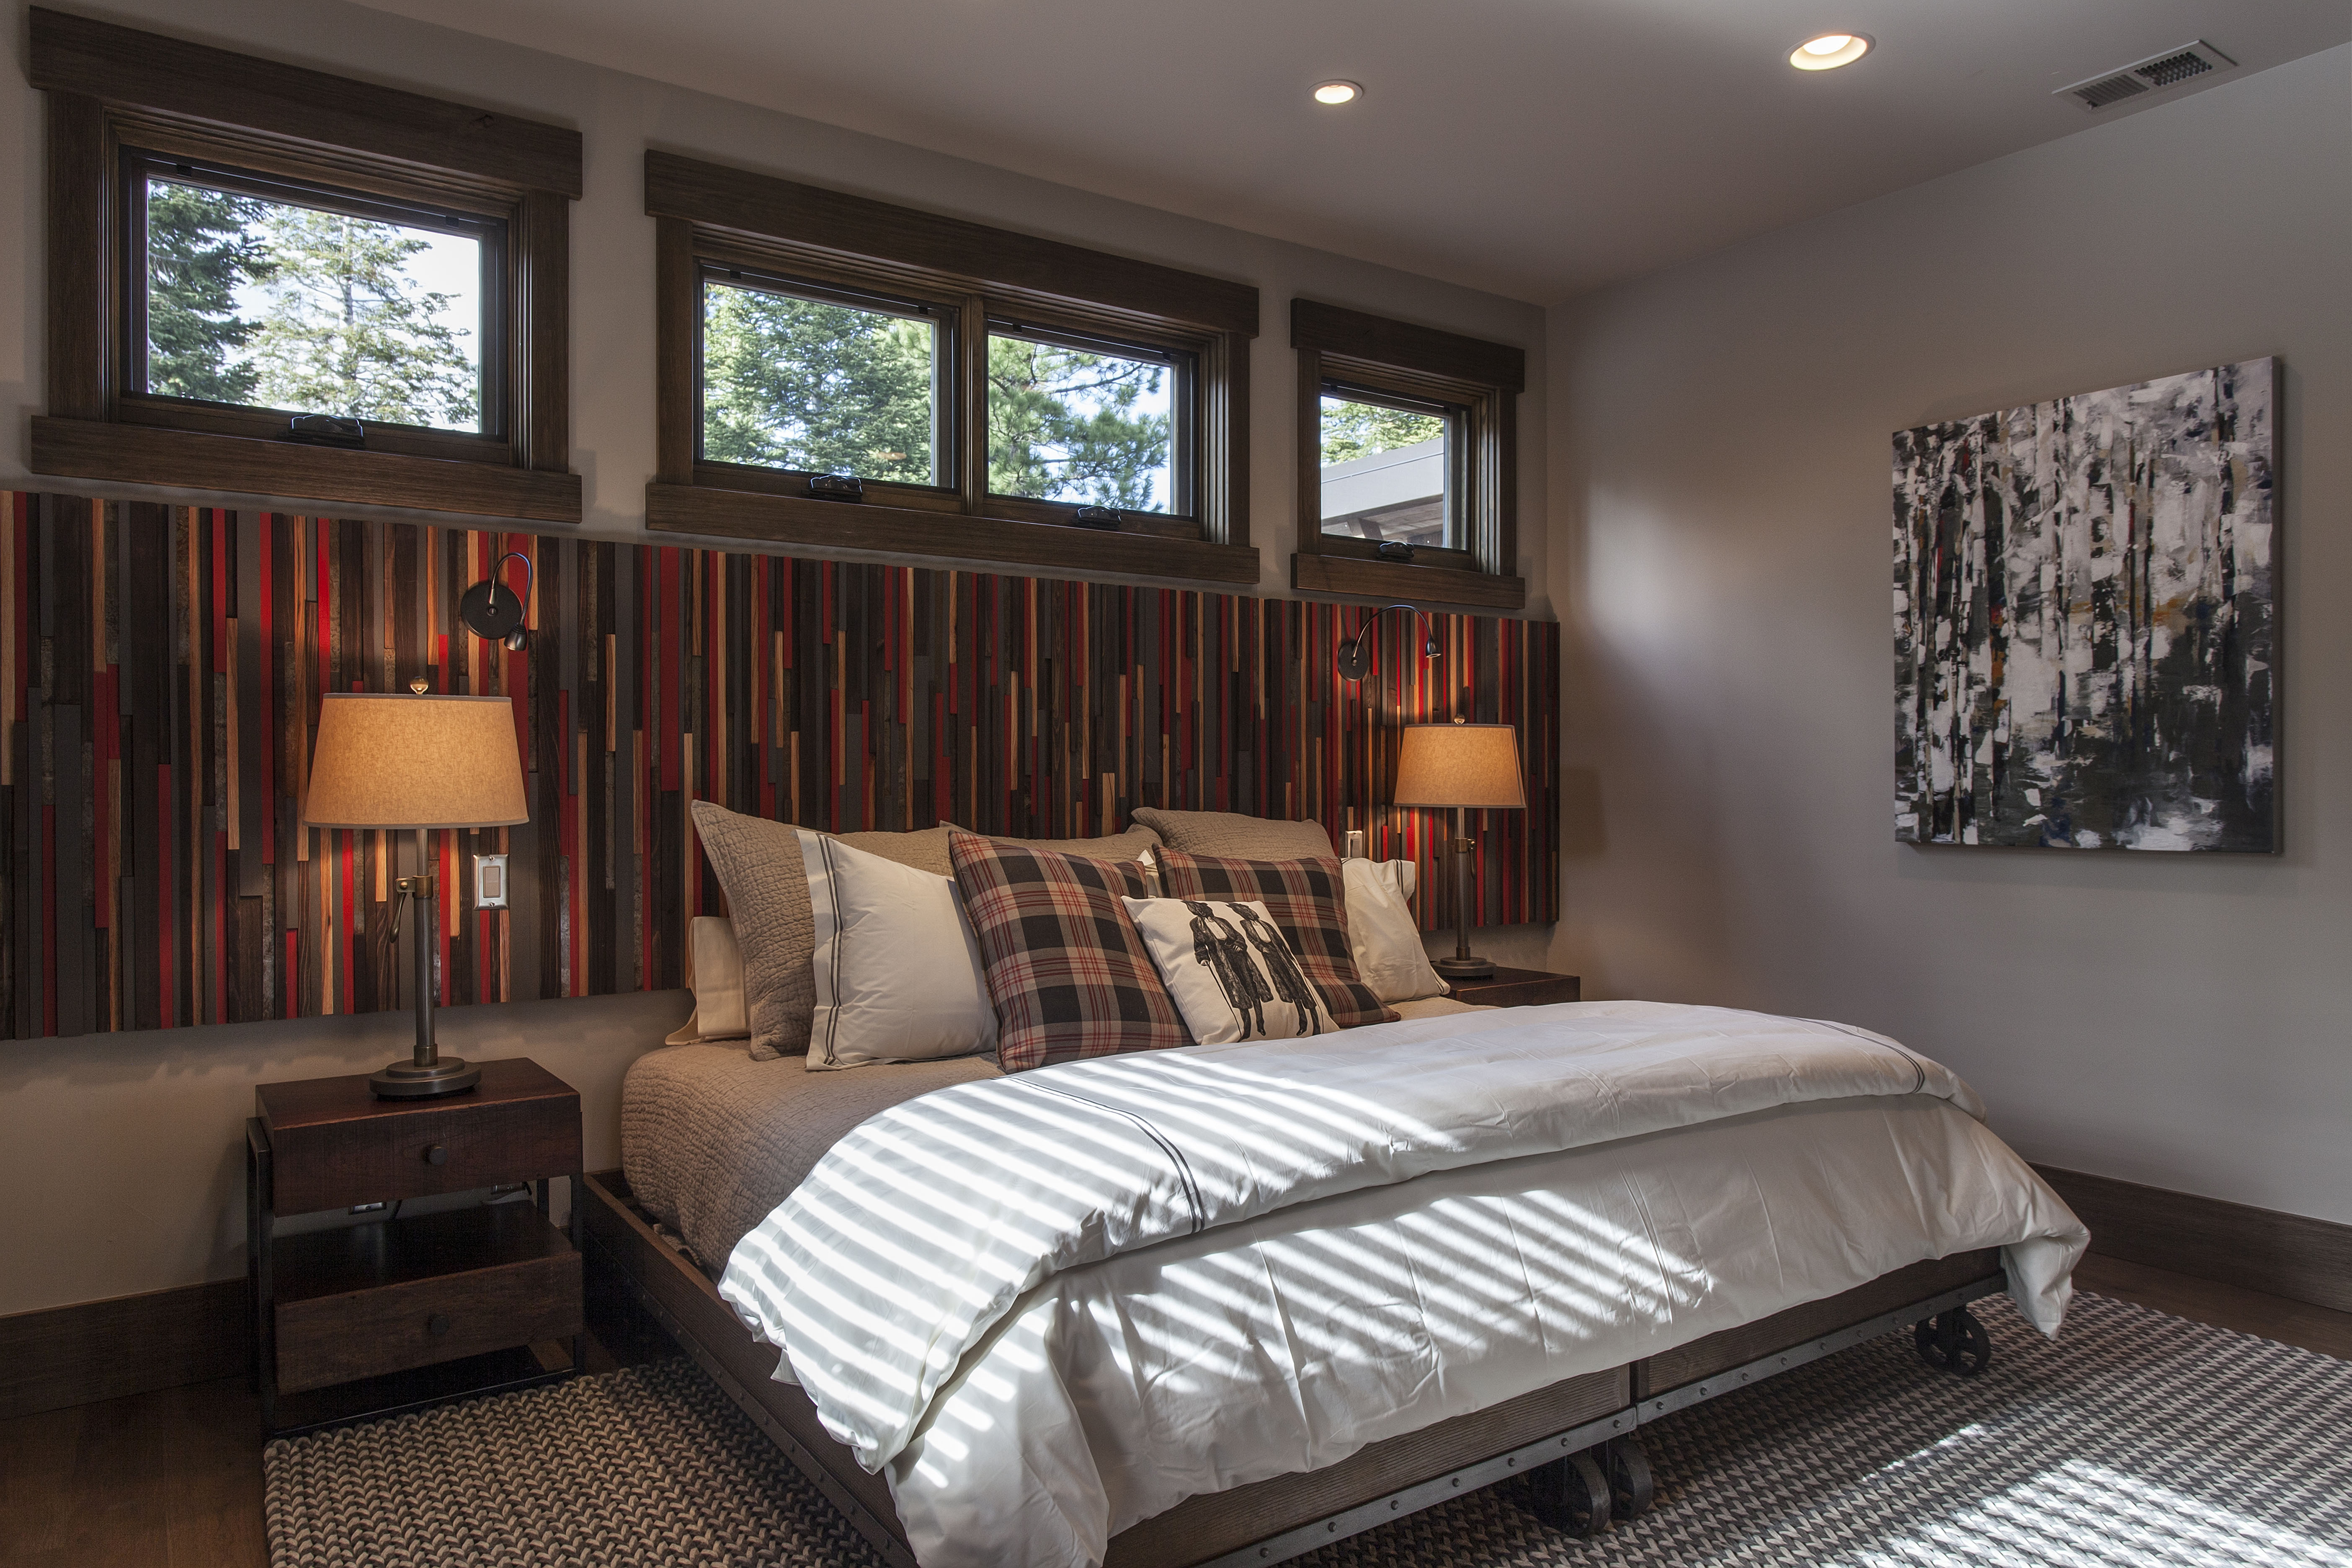 Sierra Pacific offers solid wood windows. In this photo wood awning windows above the bed bring in additional light to this bedroom.